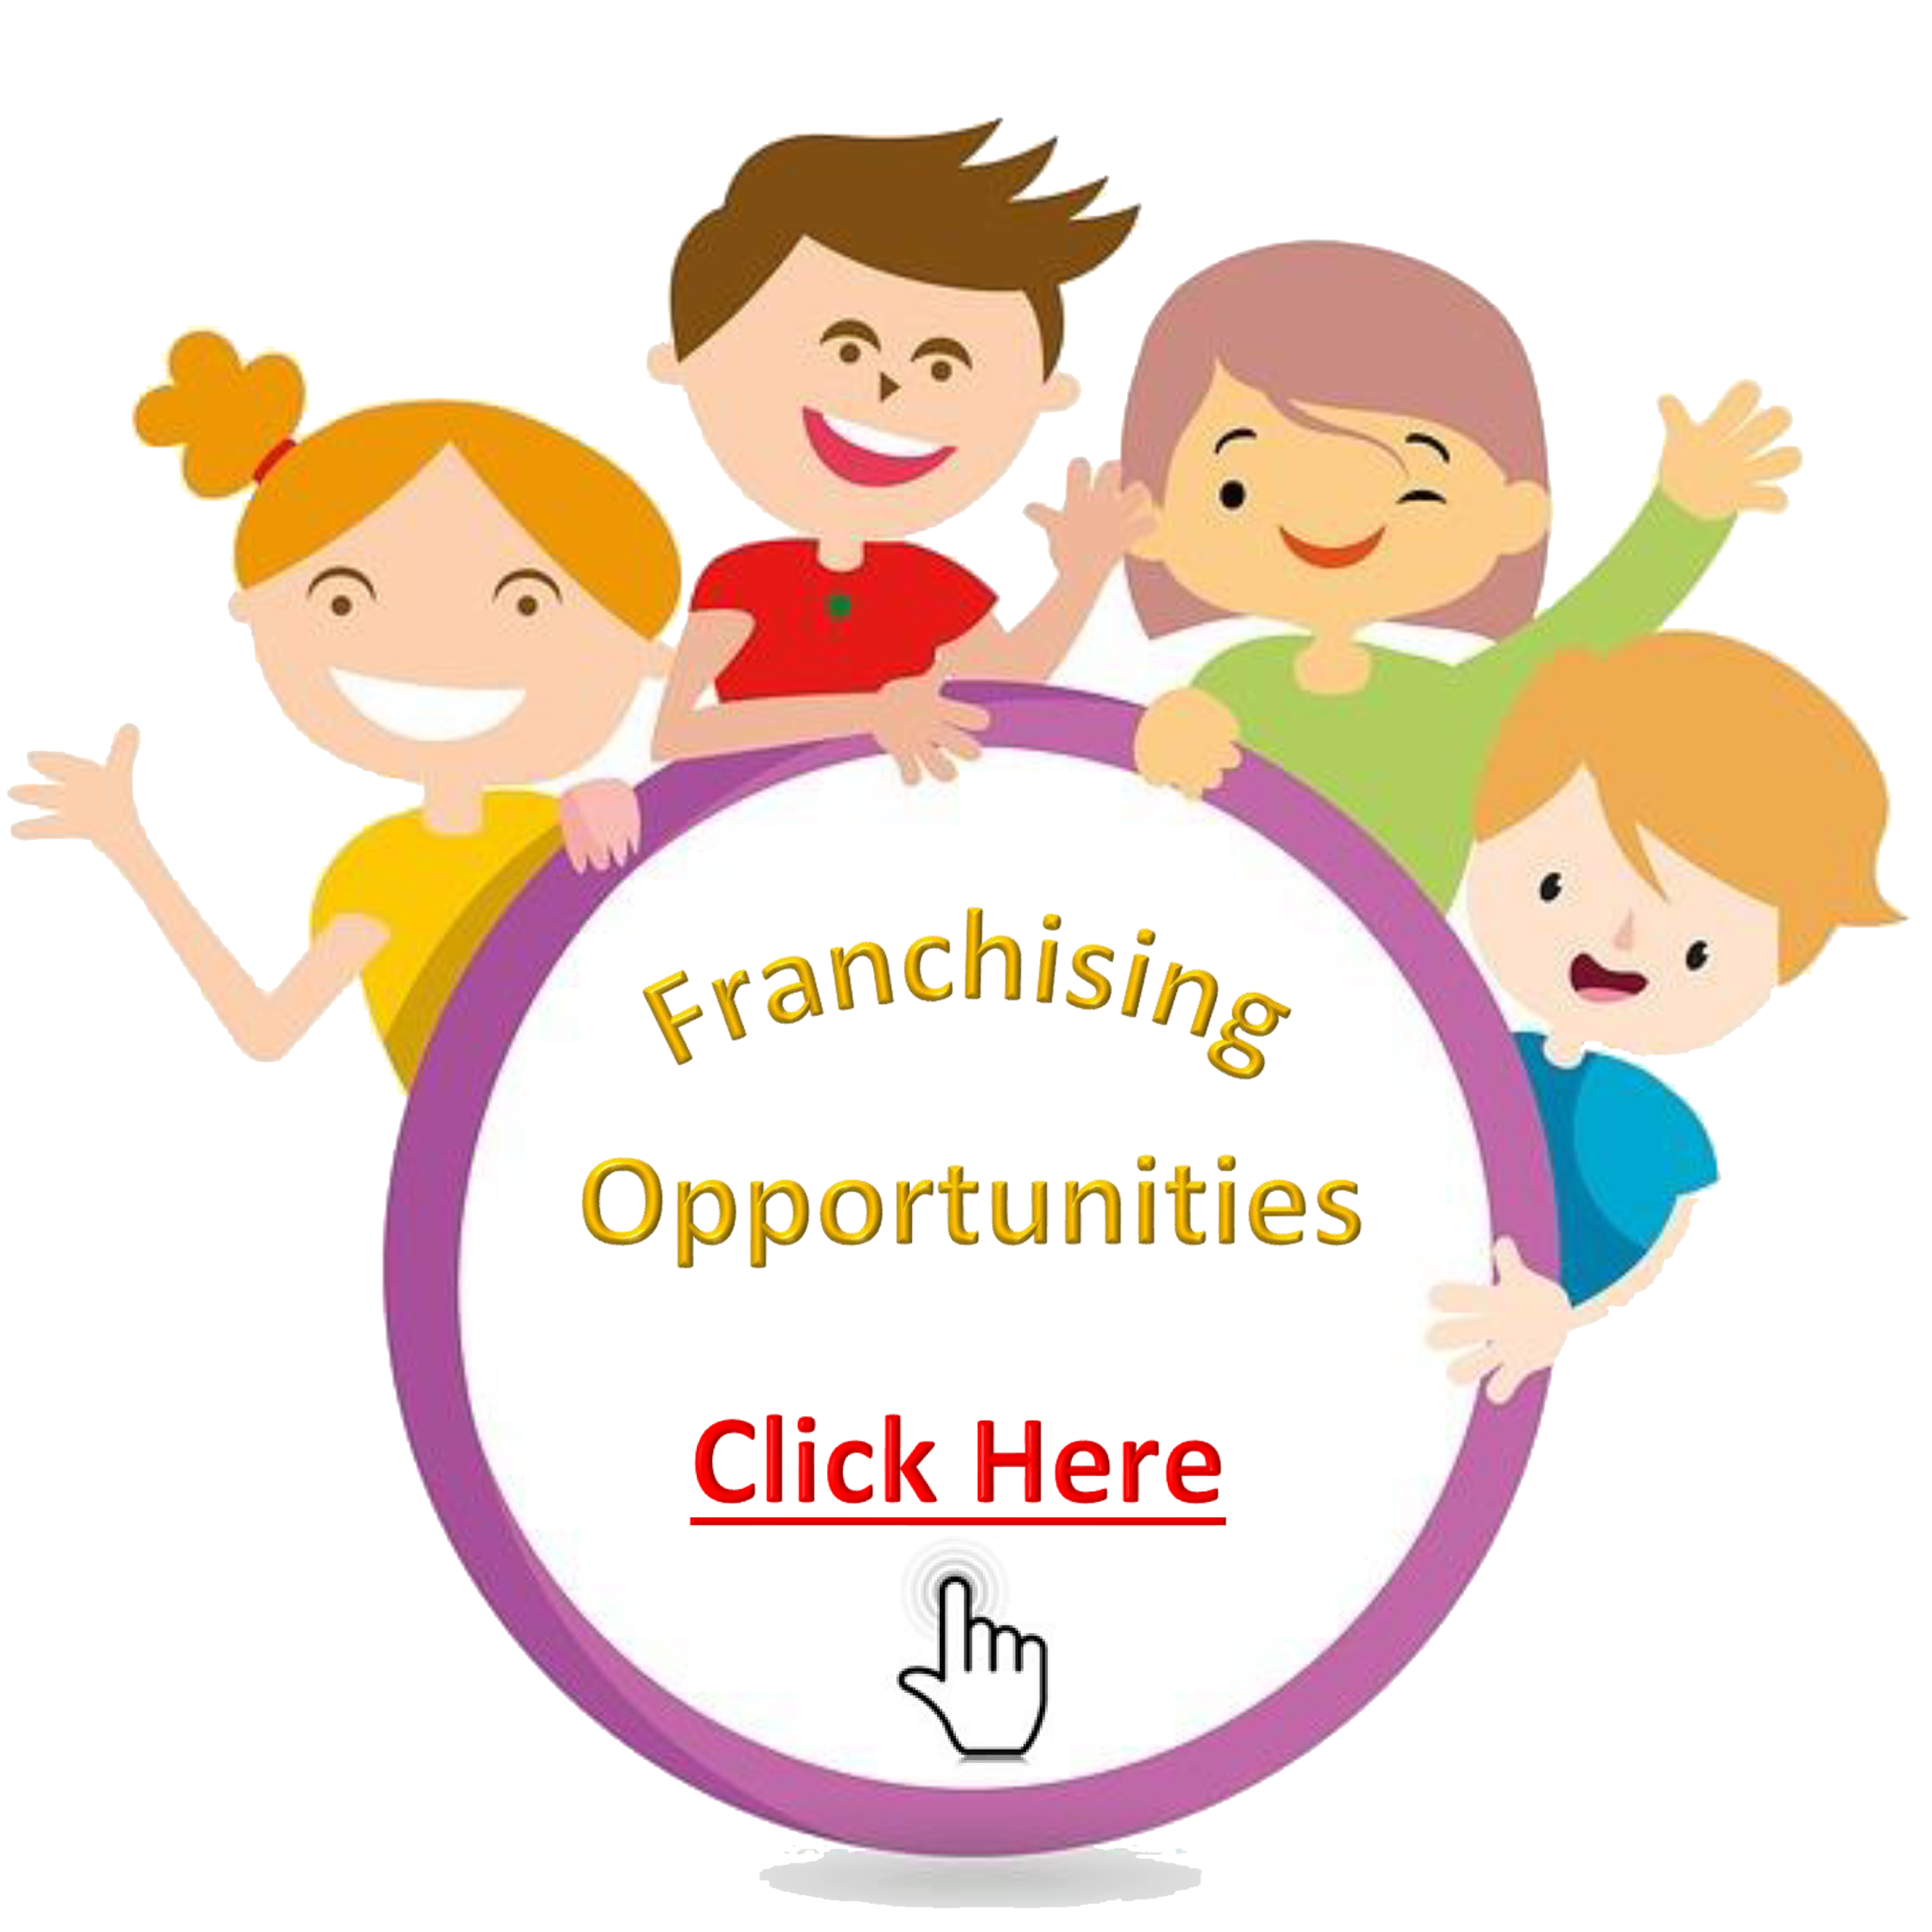 FranchiseIcon